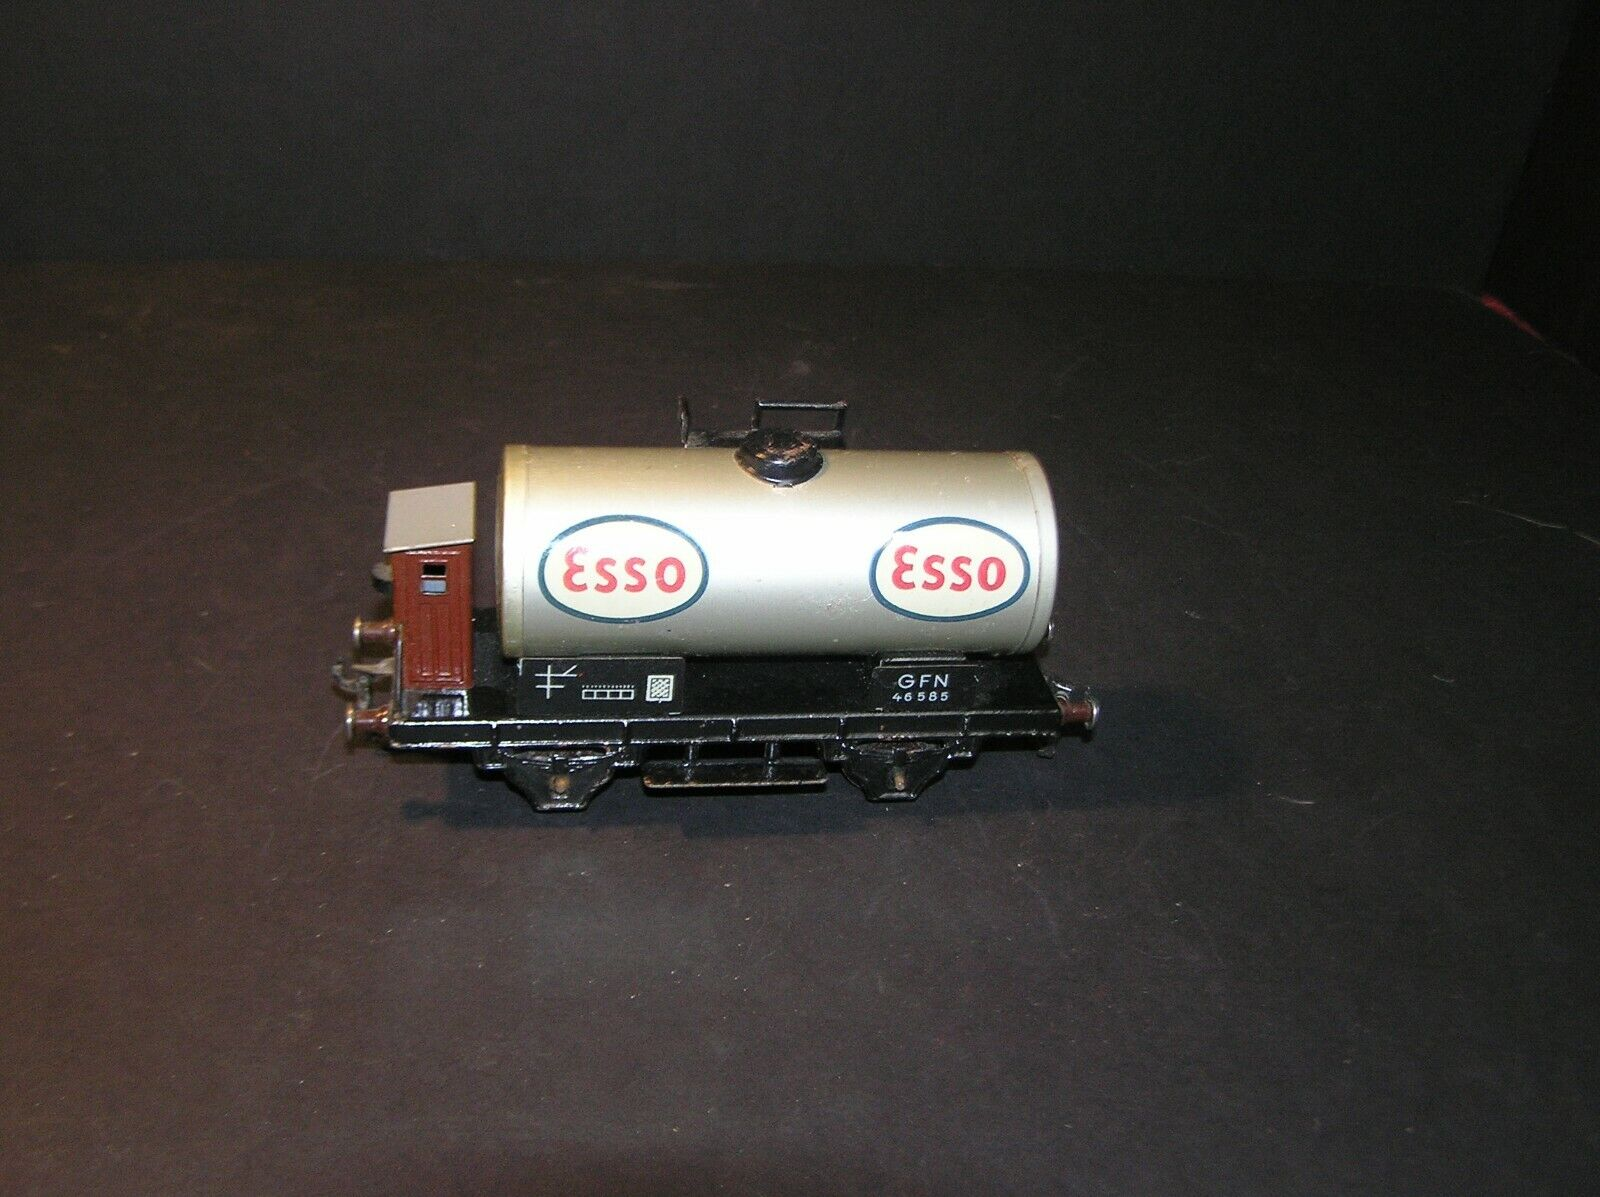 Fleischmann O Scale 1950's Esso Tank Car with Brakeman Hut, U.S.Zone Germany (i)